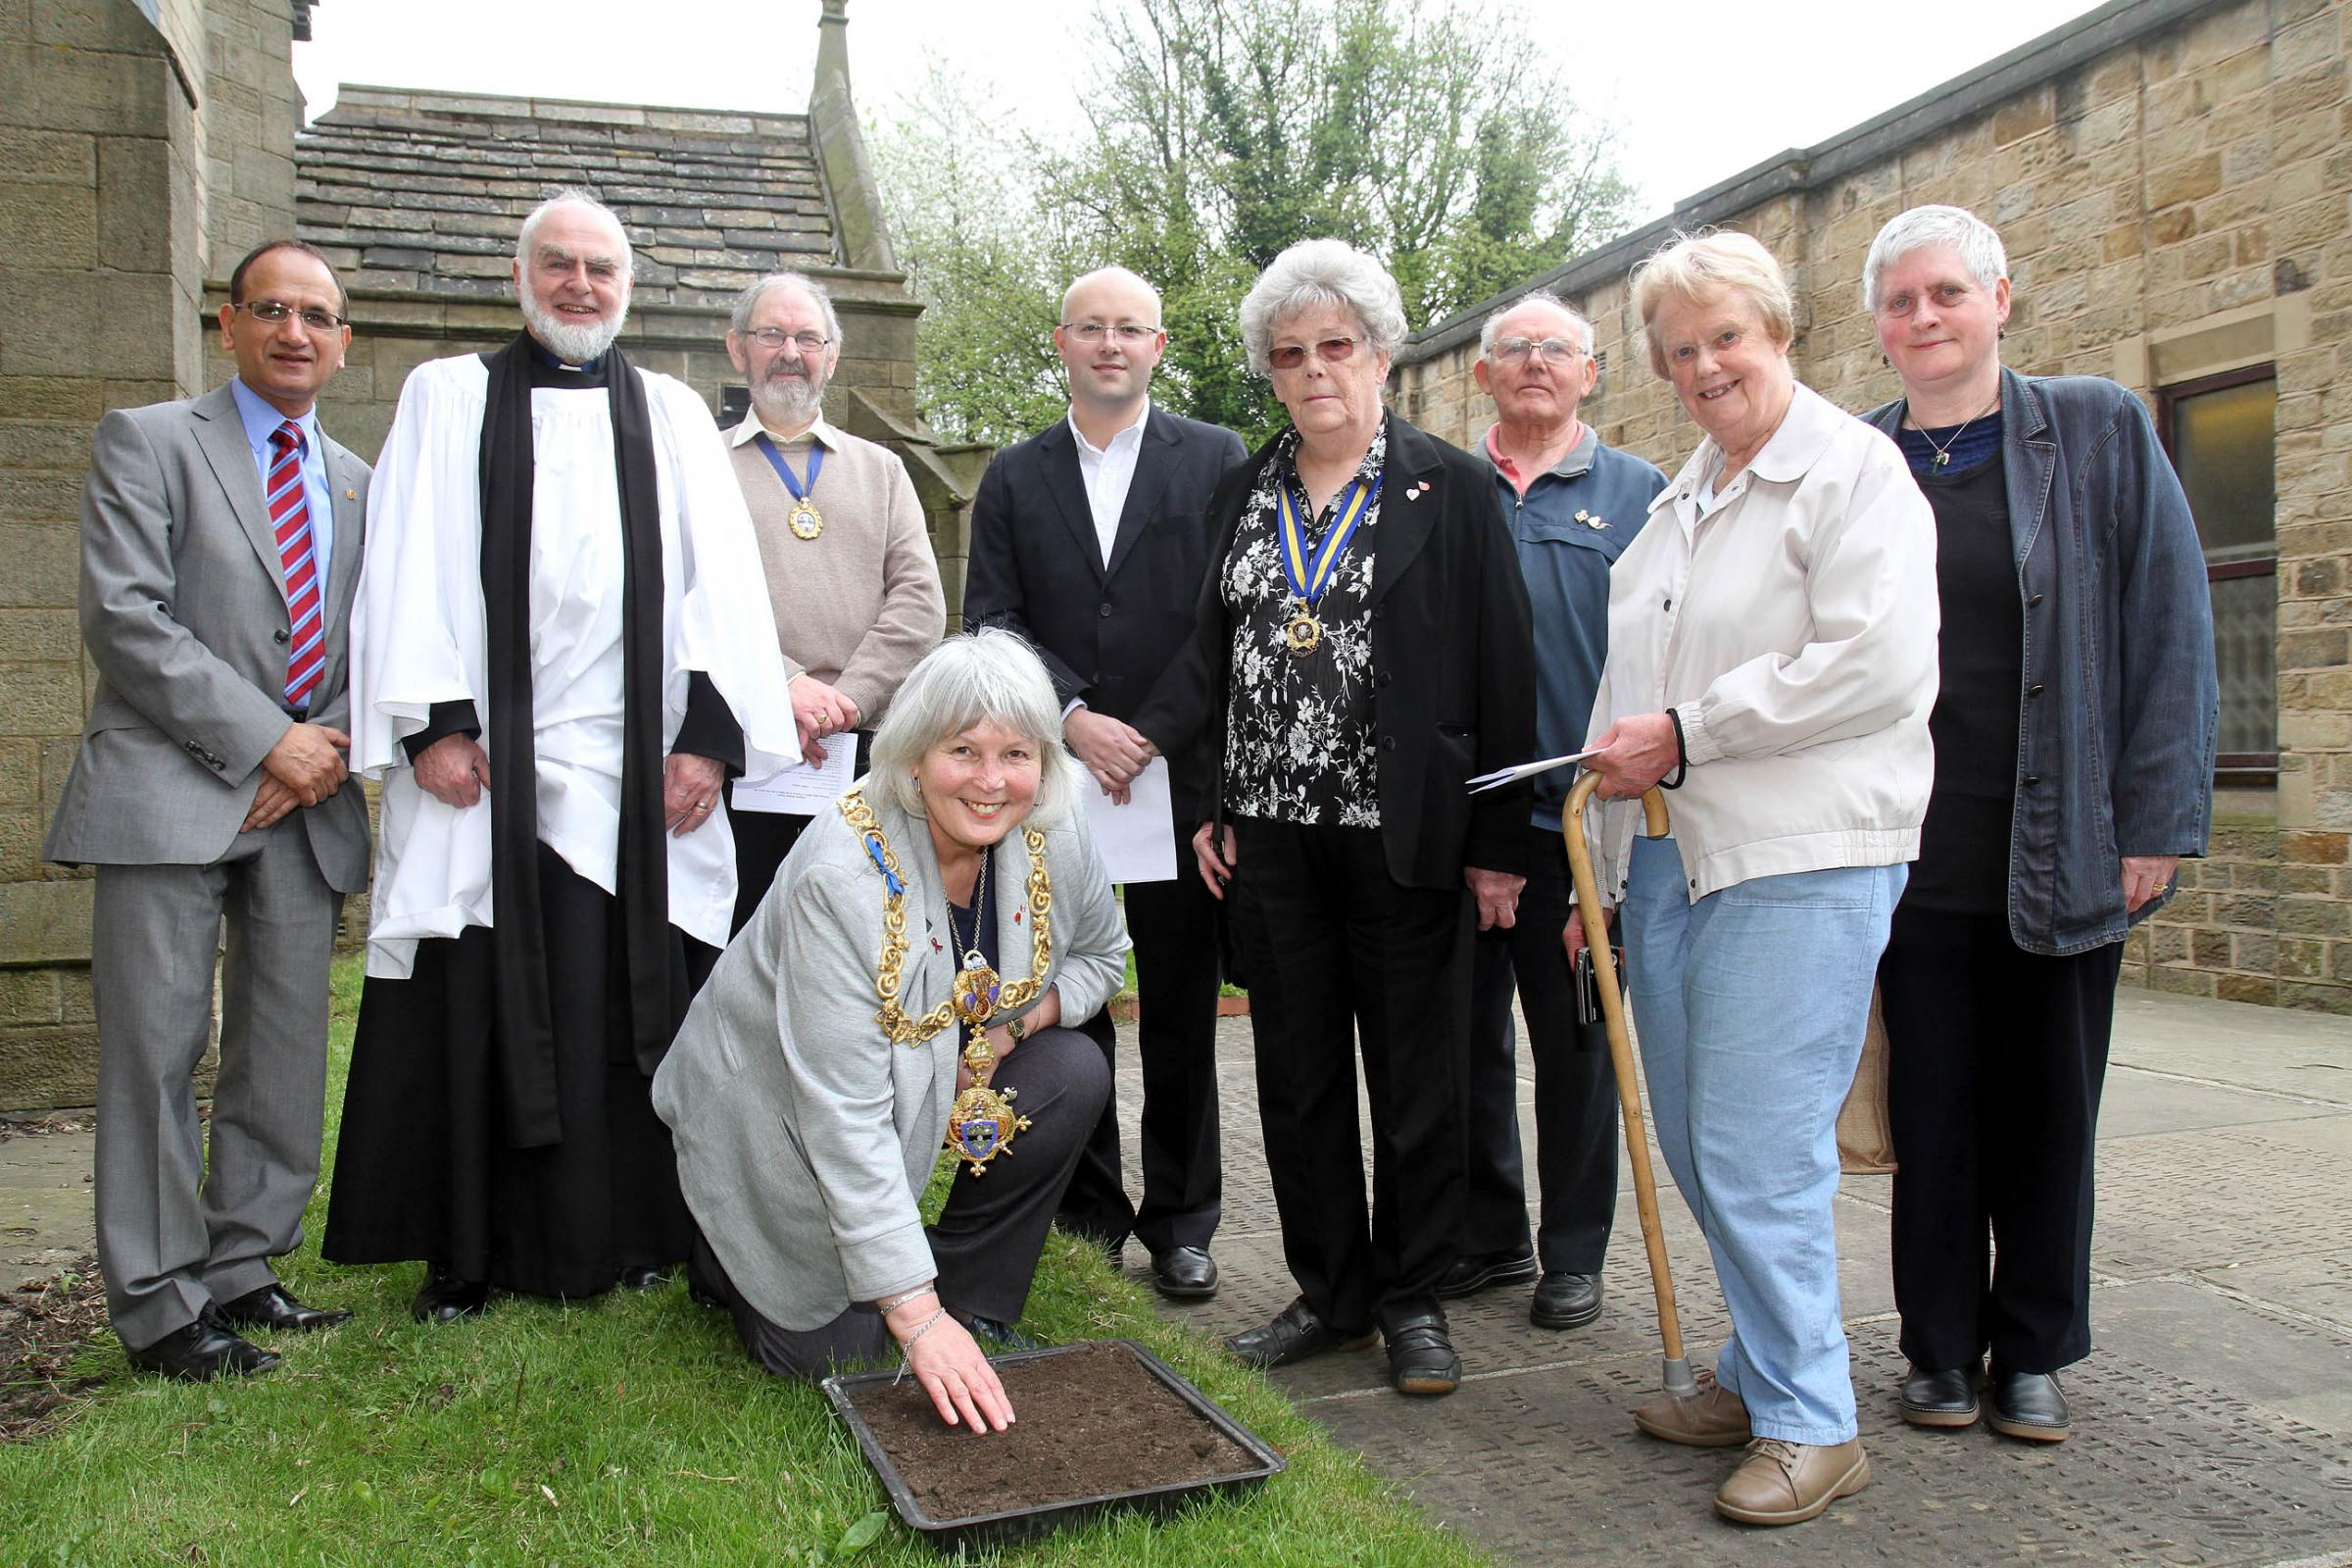 Keighley mayor, Councillor Sally Walkers, sprinkles poppy seeds during the ceremony in Keighley Shared Church yard, with Lord Mayor Councillor Khadim Hussain, left, the Rev Peter Mott and other participants in the memorial event